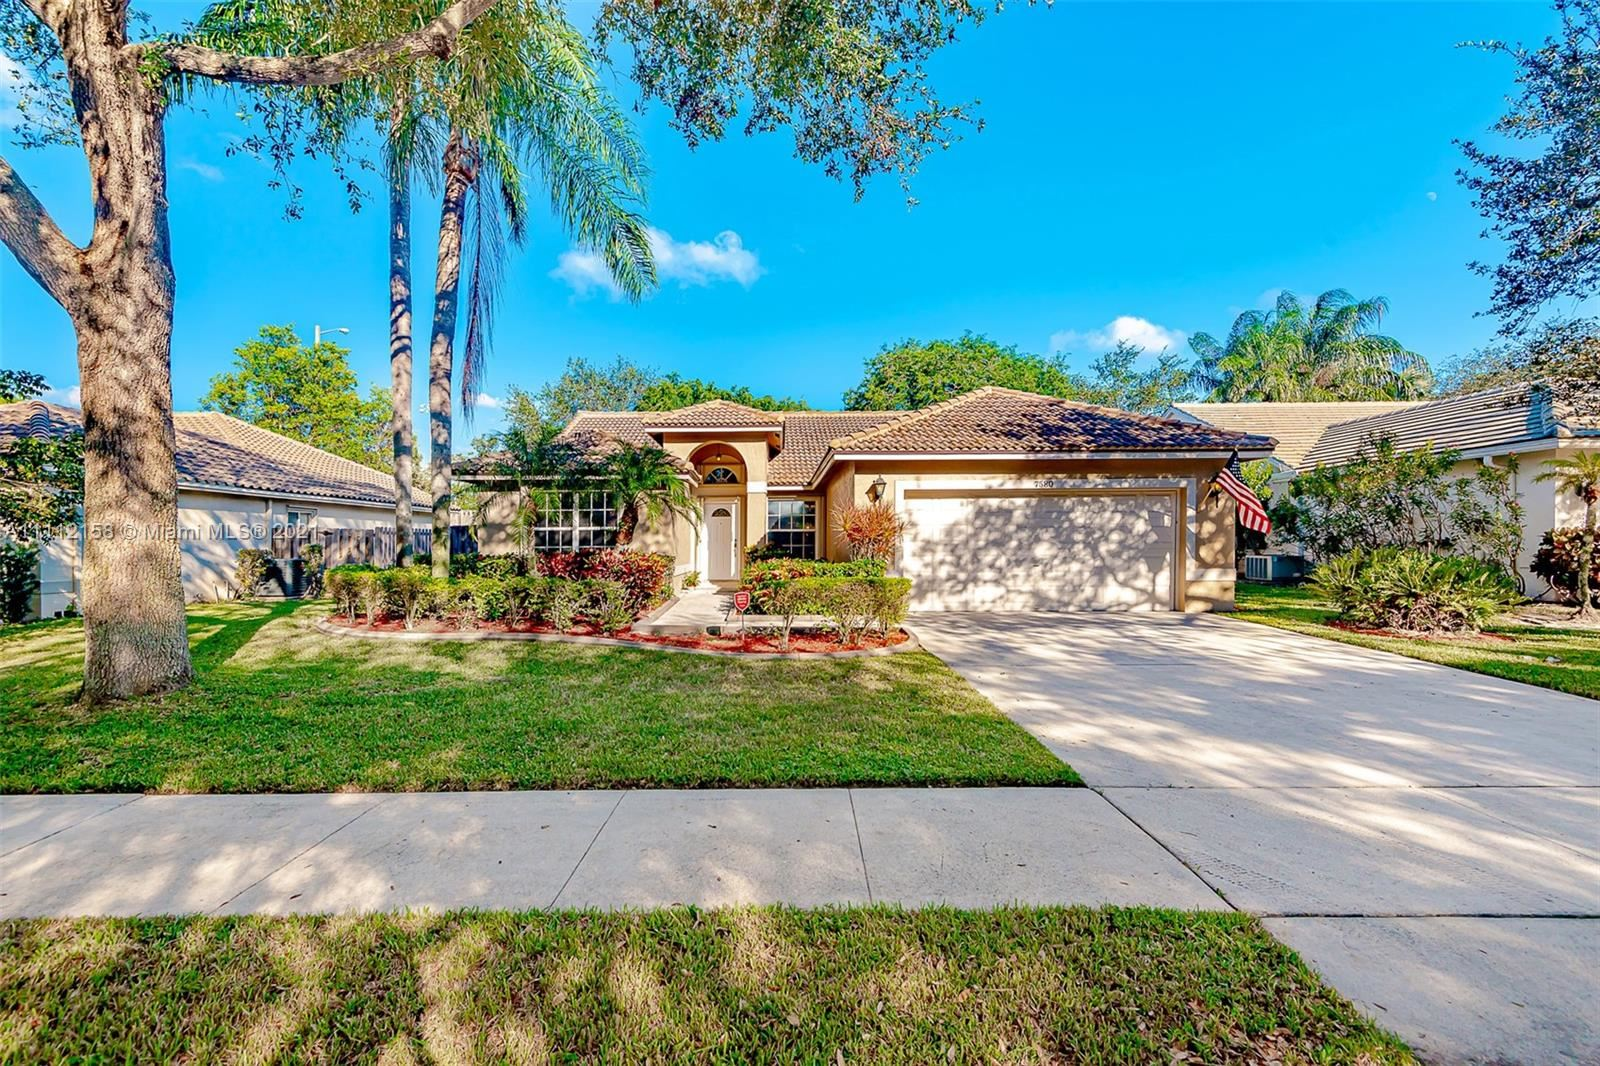 Photo of 7580 NW 47th Ave, Coconut Creek, FL 33073 (MLS # A11112158)